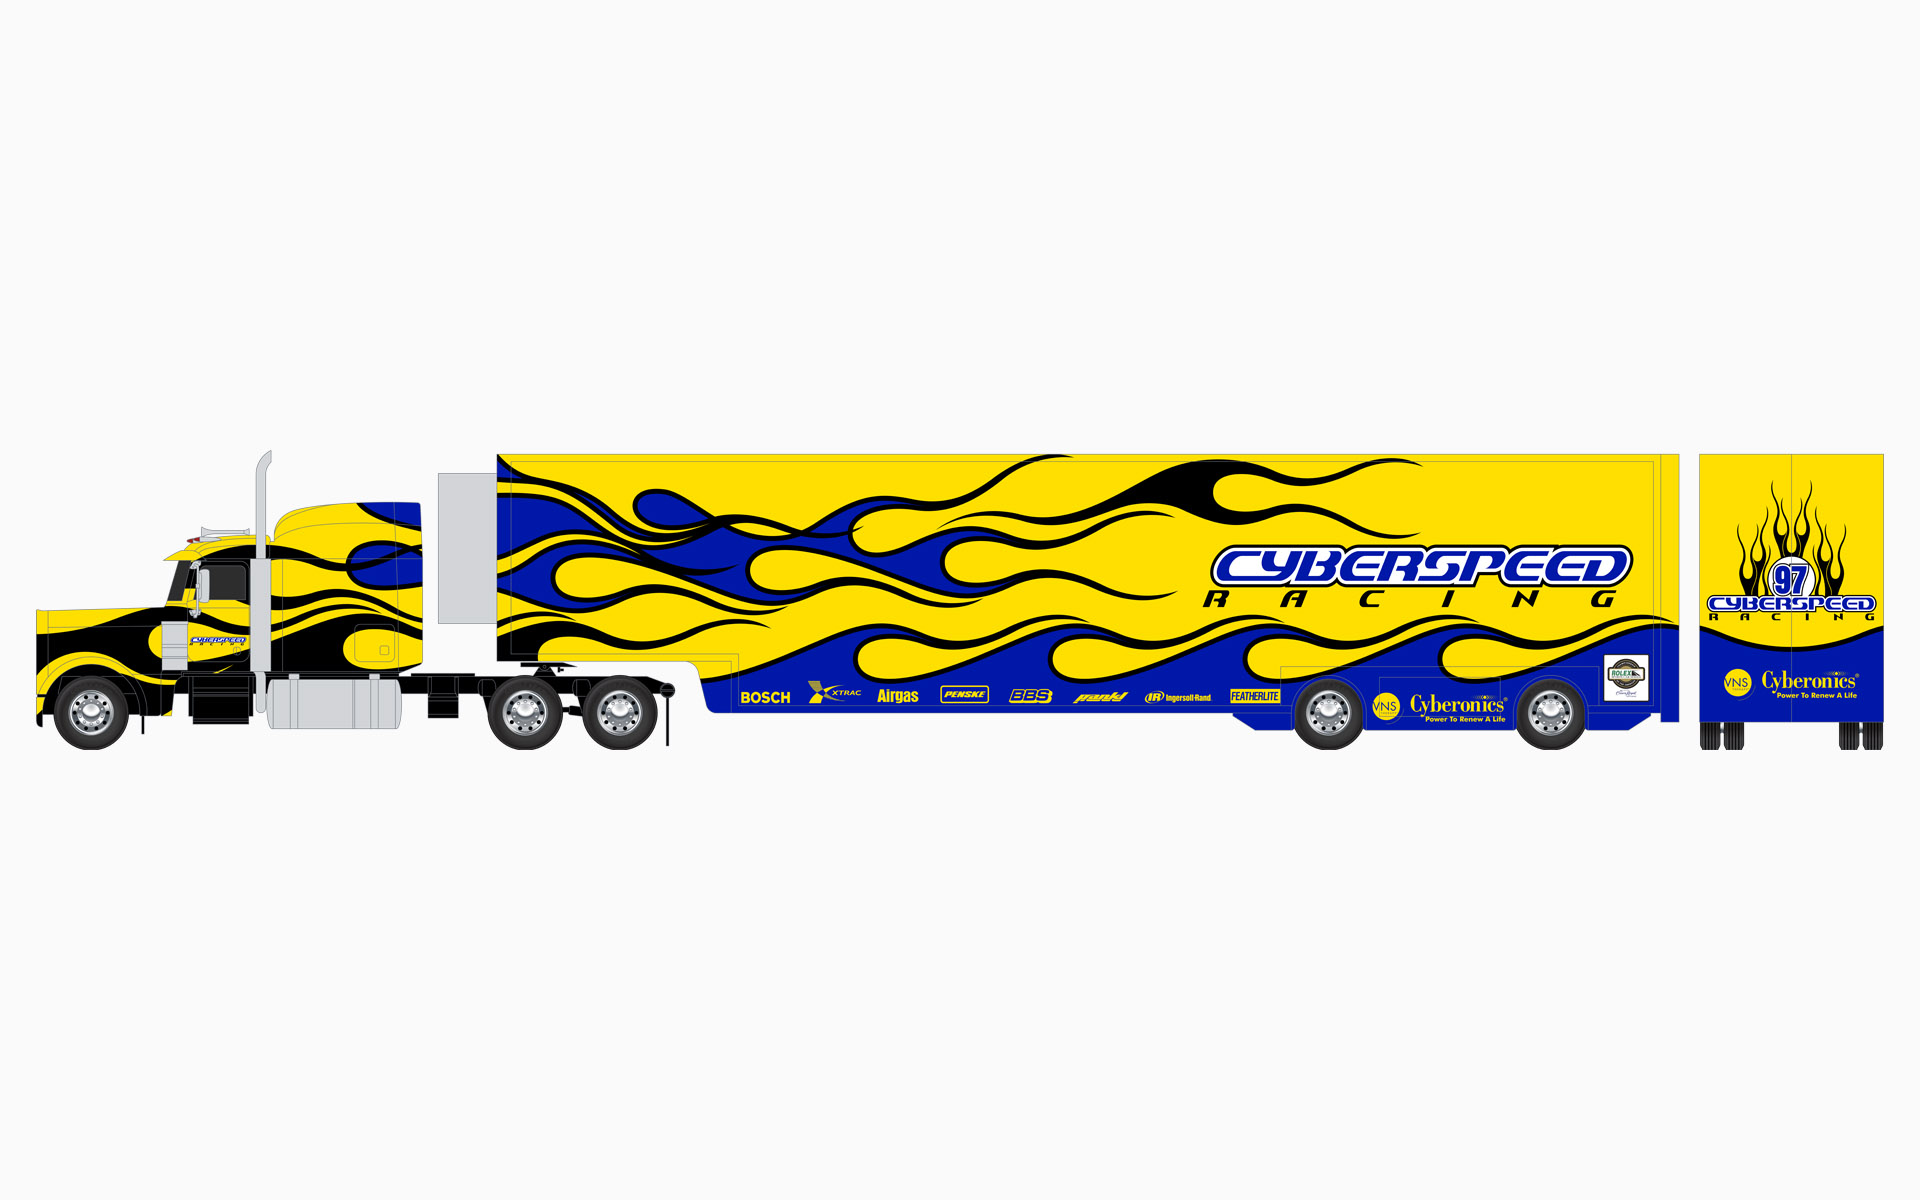 Cyberspeed Racing Transporter Livery Elevations